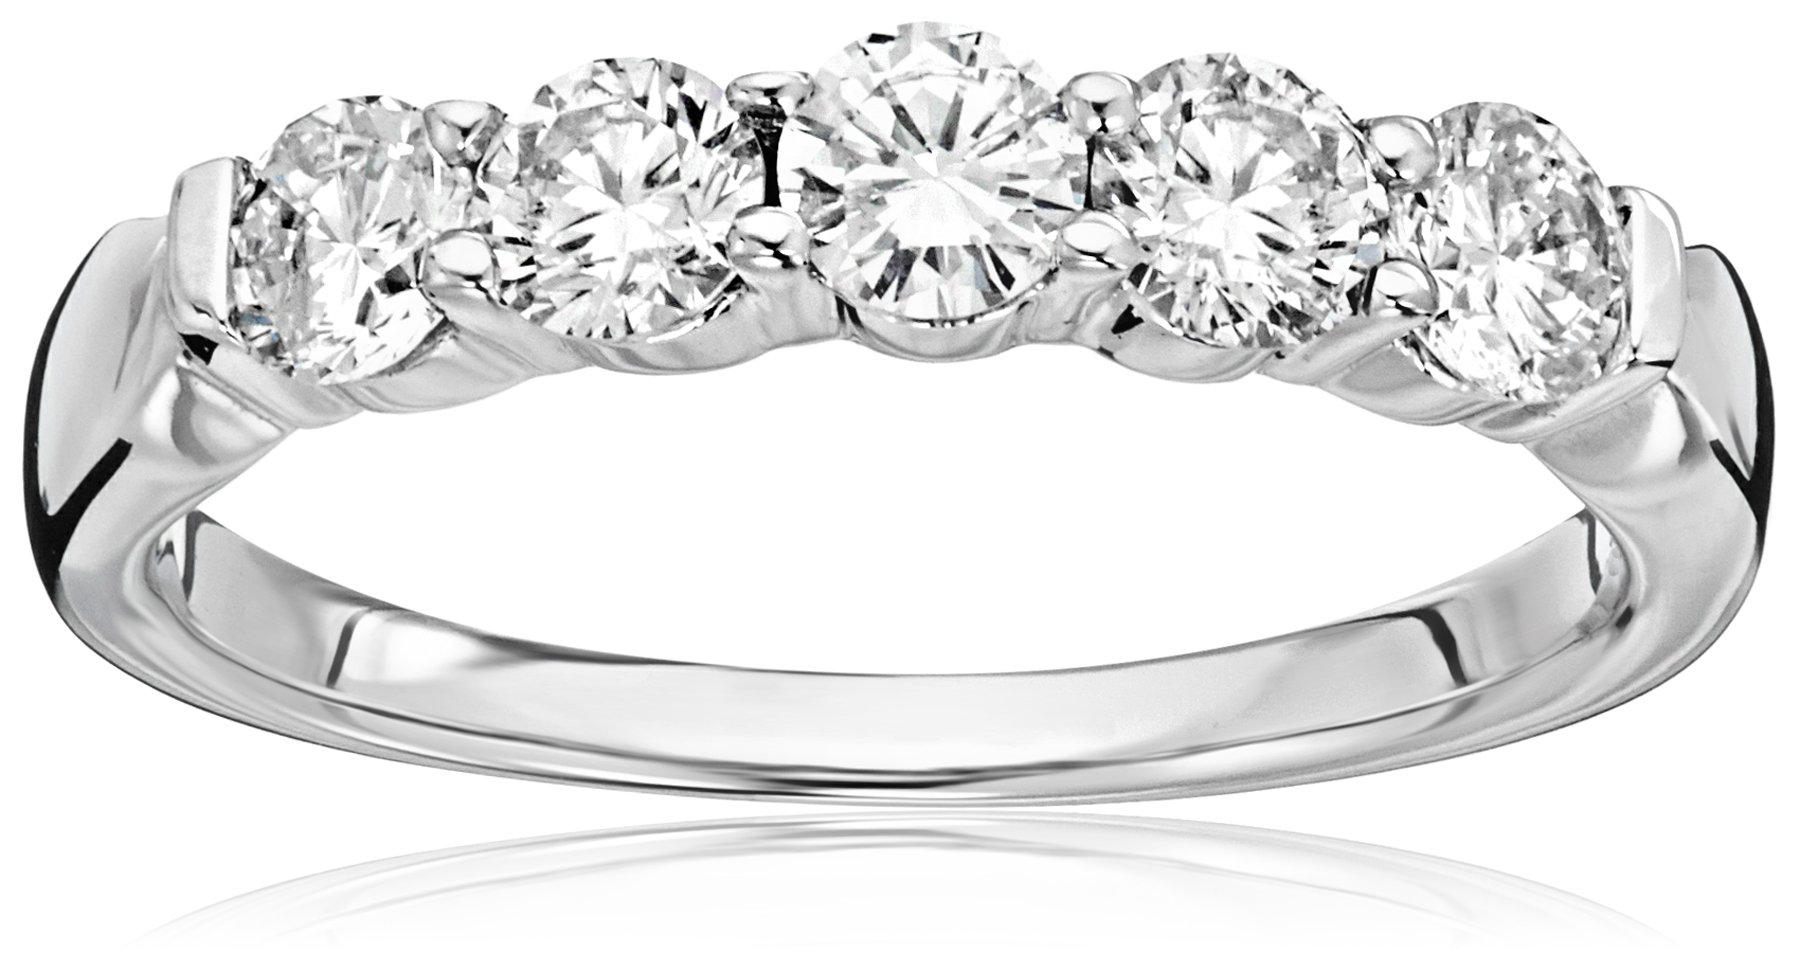 14k White Gold 5-Stone Round Diamond Anniversary Band (1 cttw, IJ Color, I1-I2 Clarity), Size 8